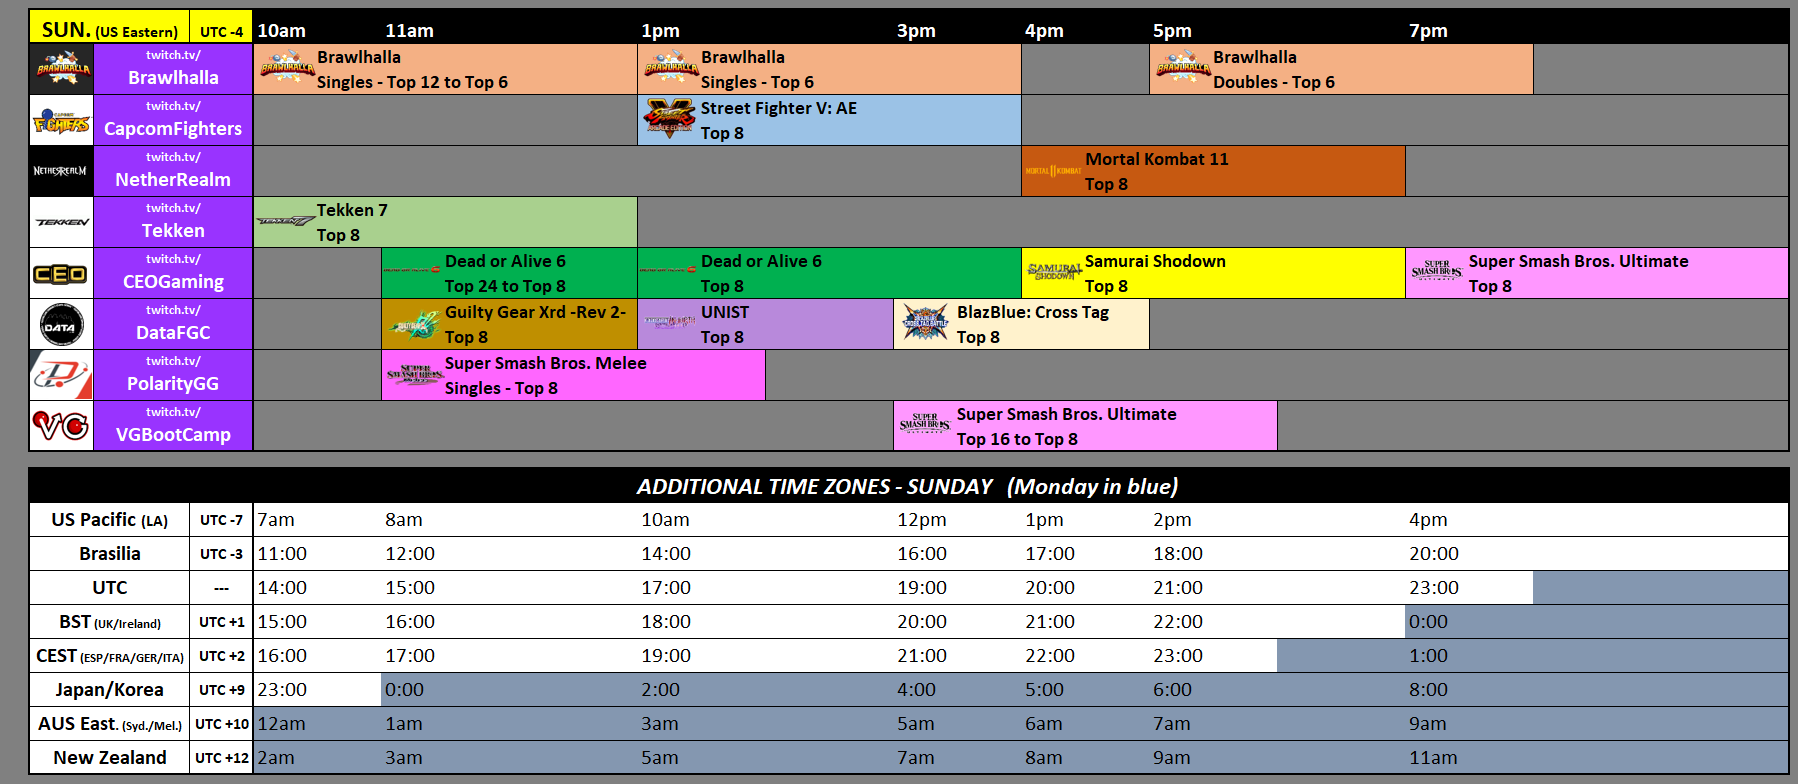 CEO 2019 Event Schedule 3 out of 3 image gallery